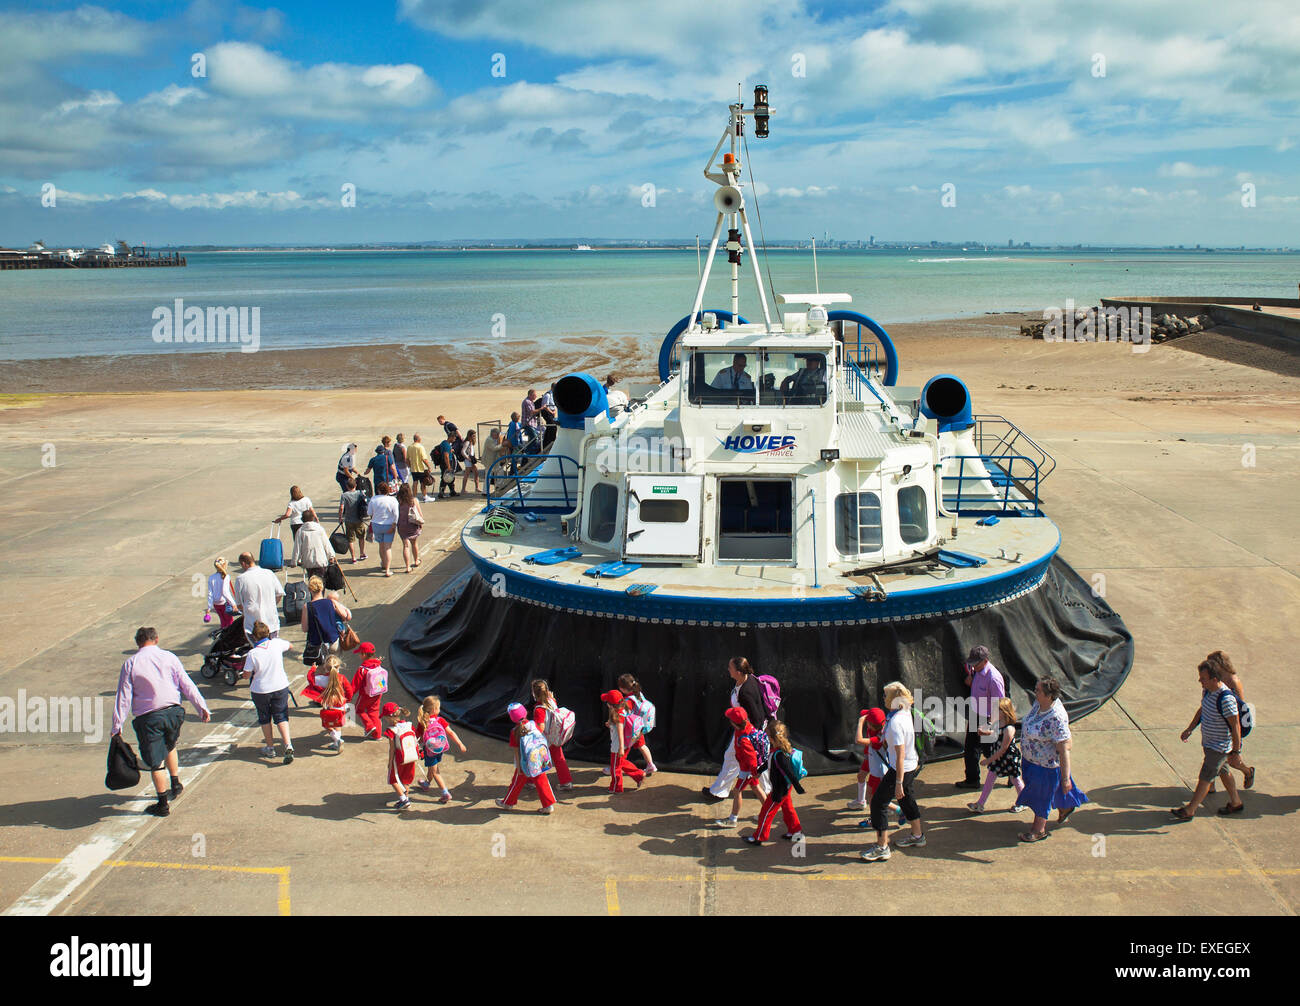 Passengers embarking the Isle of Wight Hovercraft at Ryde. - Stock Image